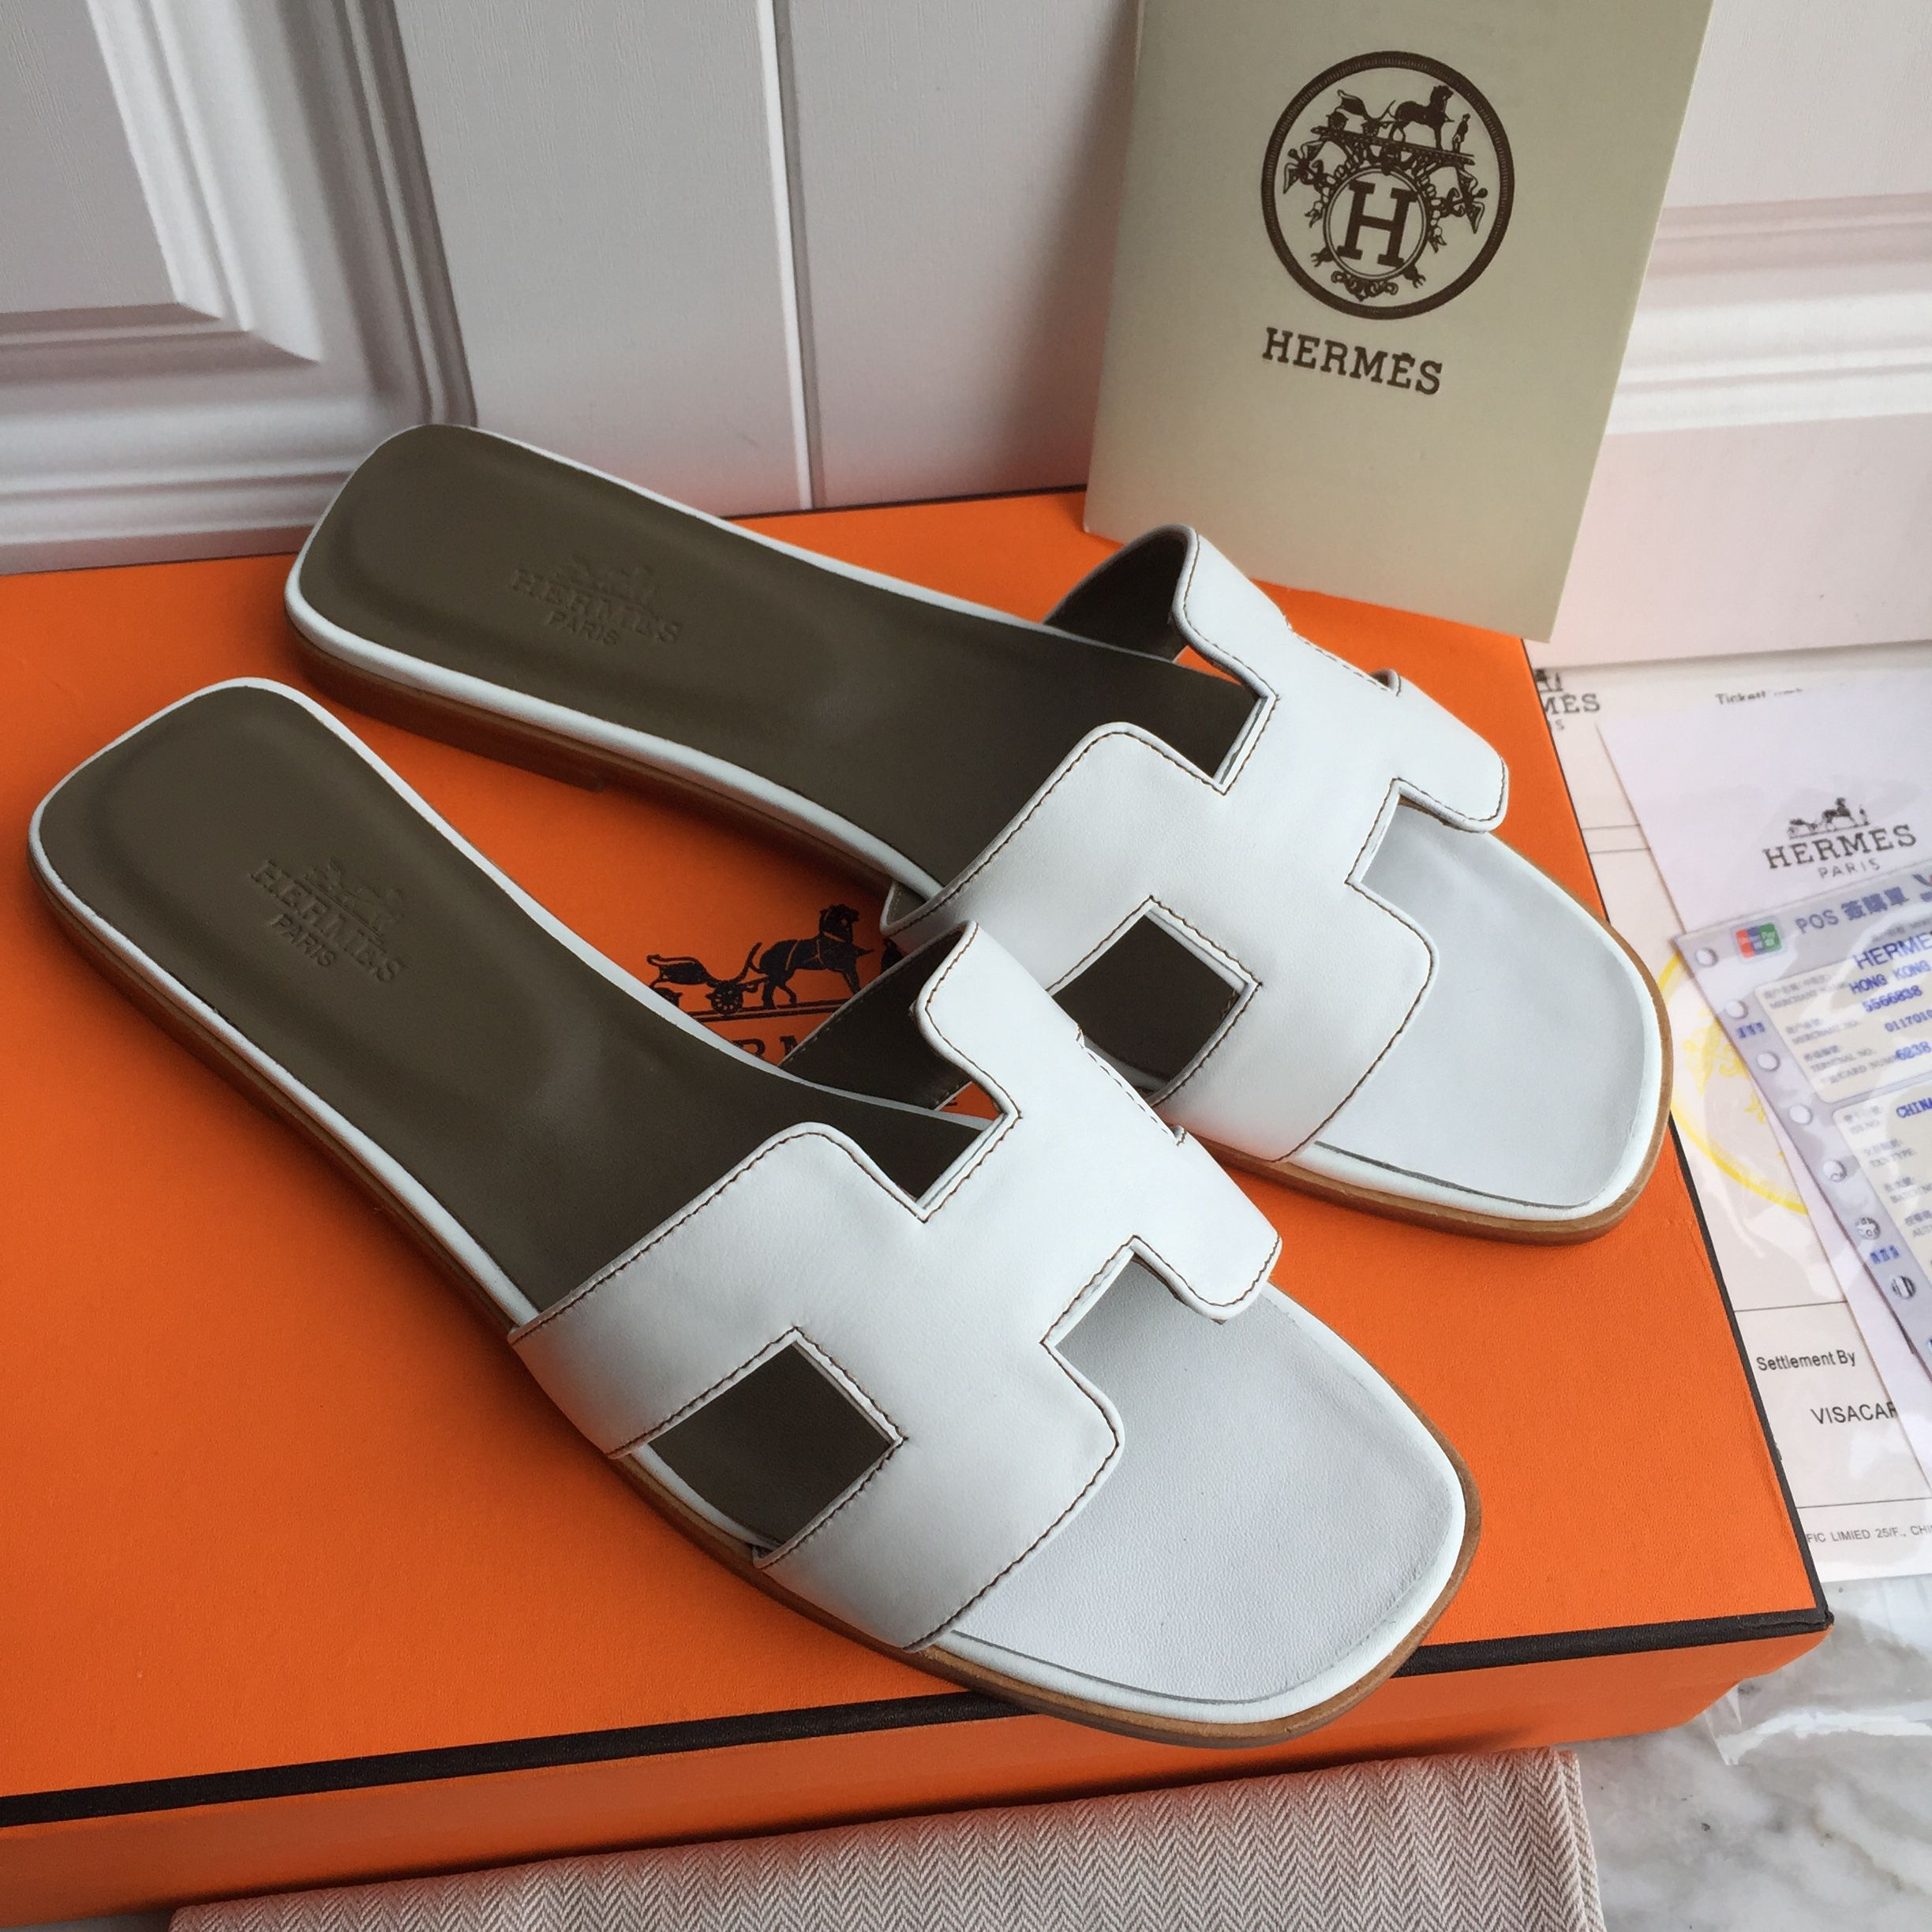 8b836077222 Hermes woman leather slippers sandals white color